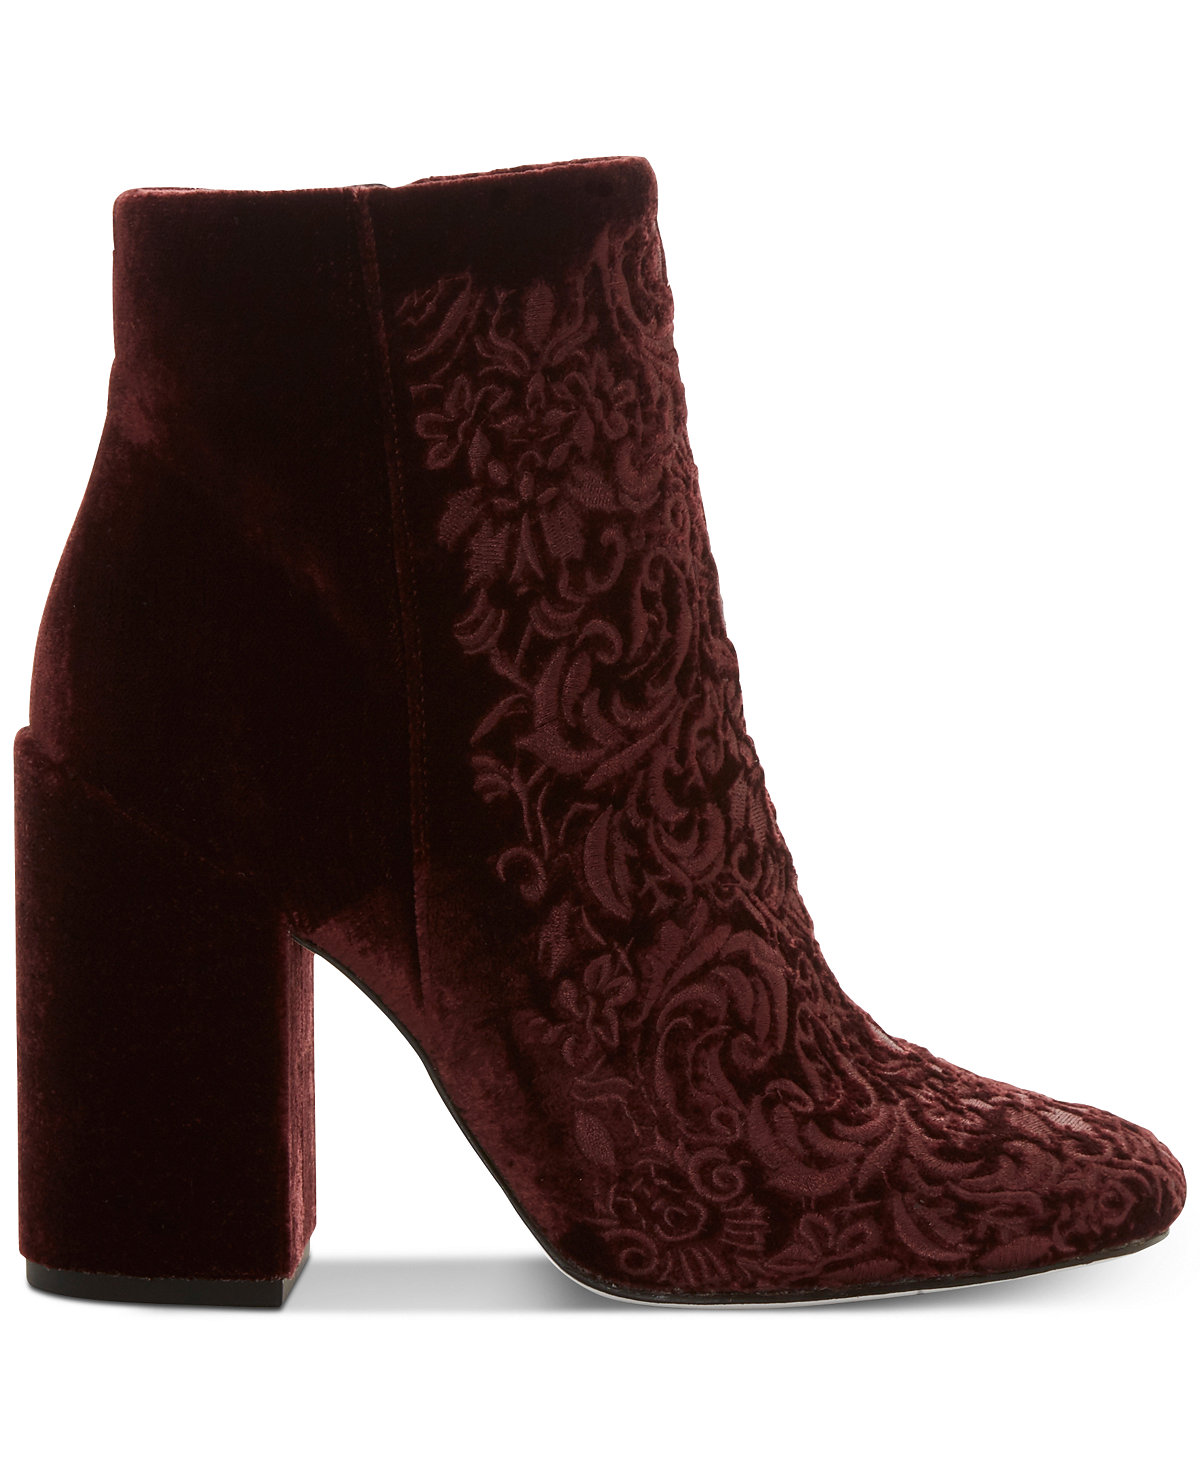 Jessica Simpson Wovella Rouge Noir Embroidered Block-Heel Ankle Booties